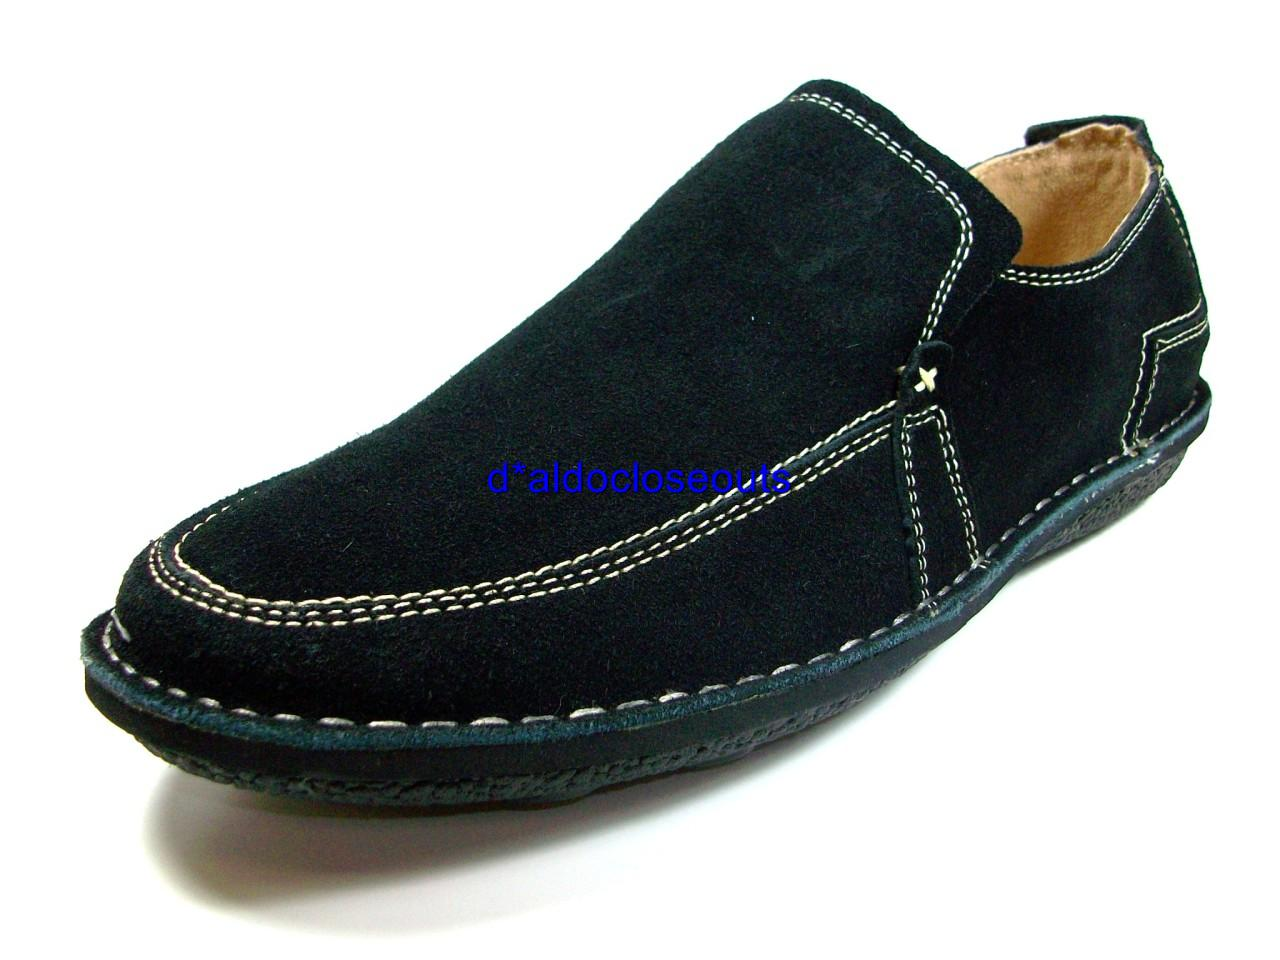 genuine leather italian style driving loafer shoes nib ebay